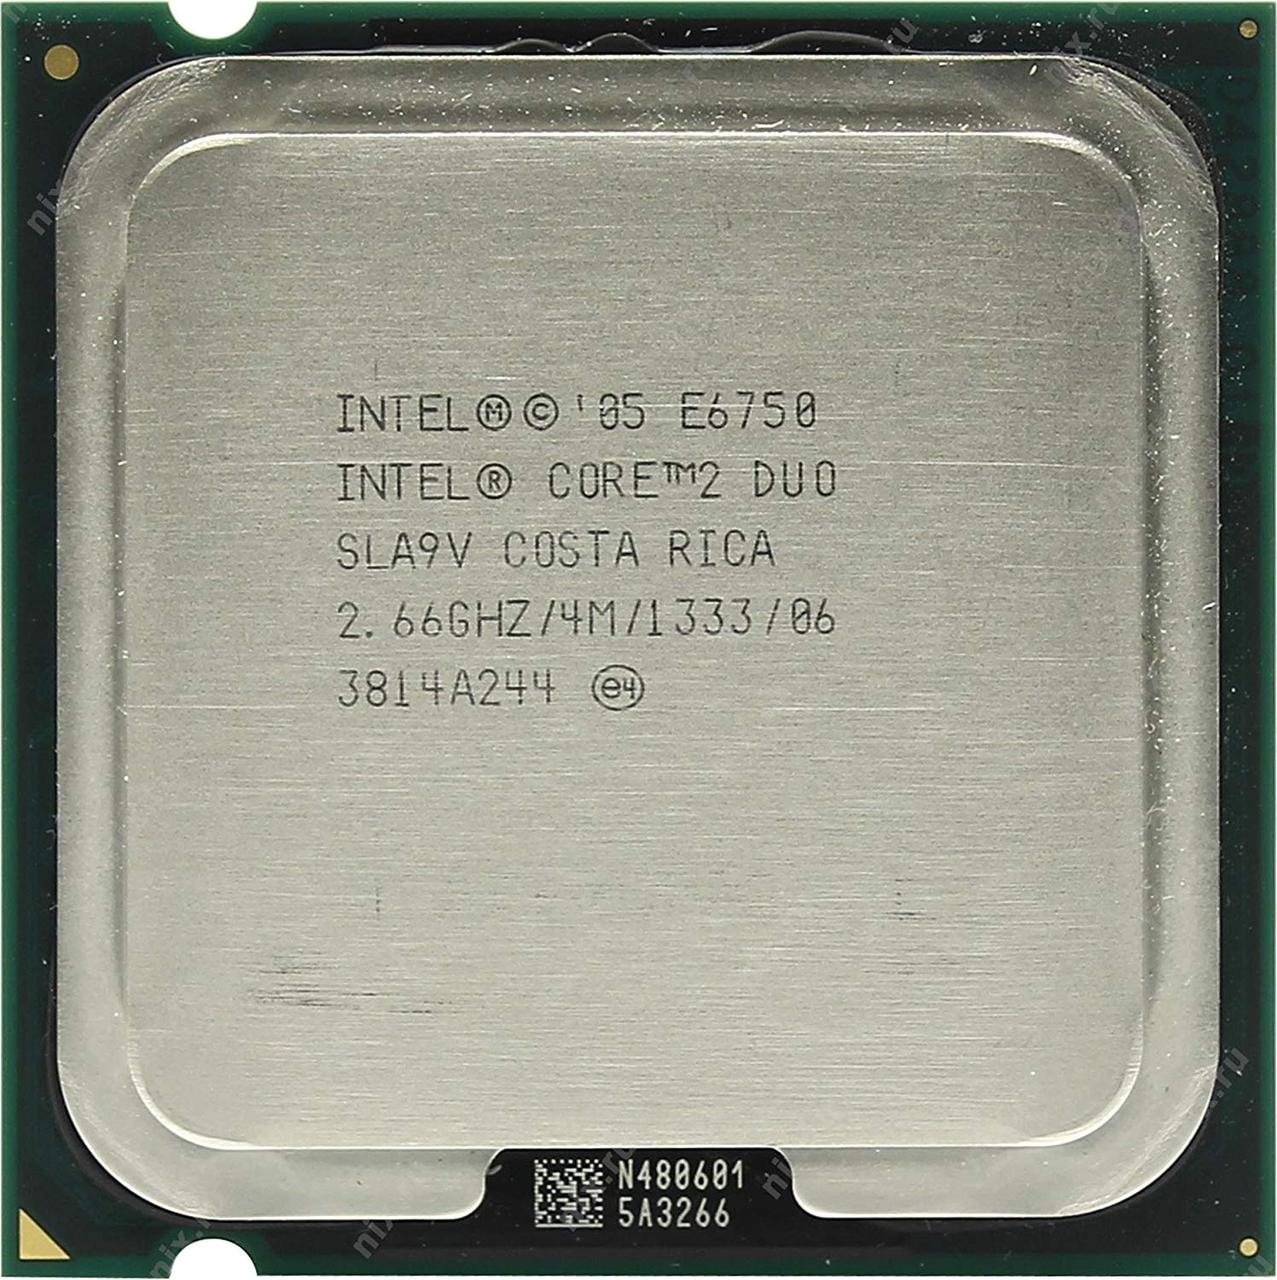 Процессор Intel Core 2 Duo E6750 2.66GHz/4M/1333 (SLA9V) s775, tray